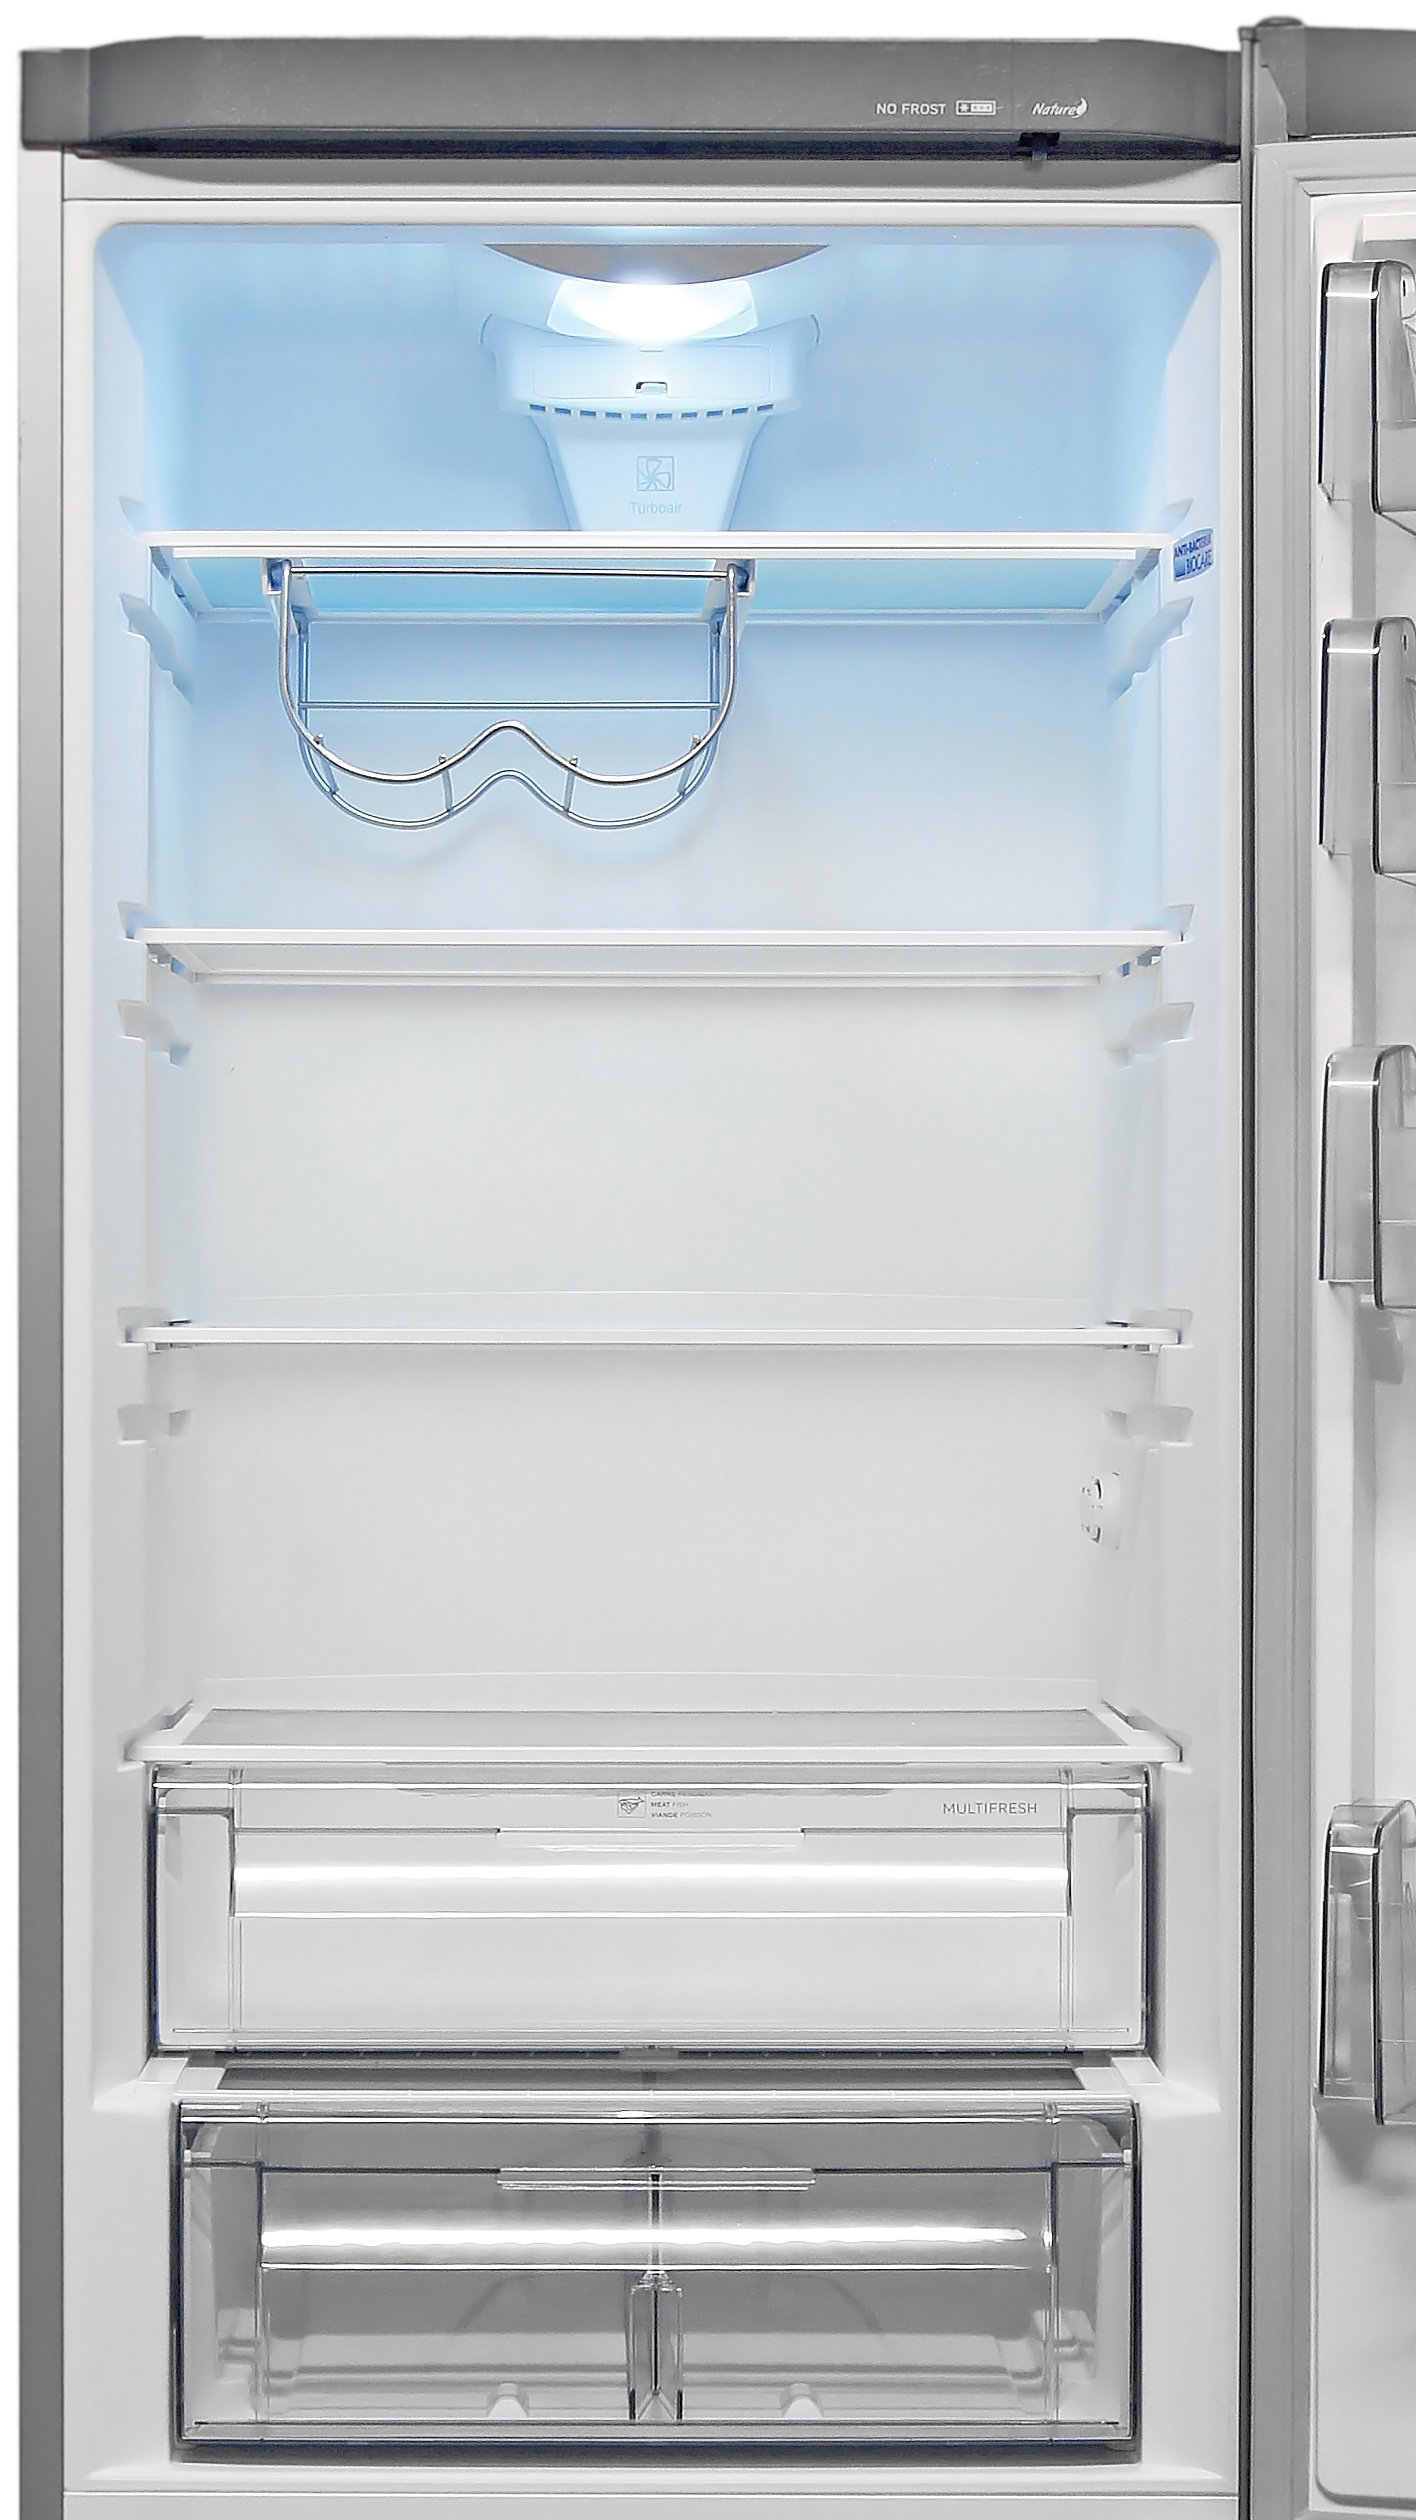 The Fagor FFJA4845X's main fridge compartment is accessible and stylish, though customization options are somewhat limited.